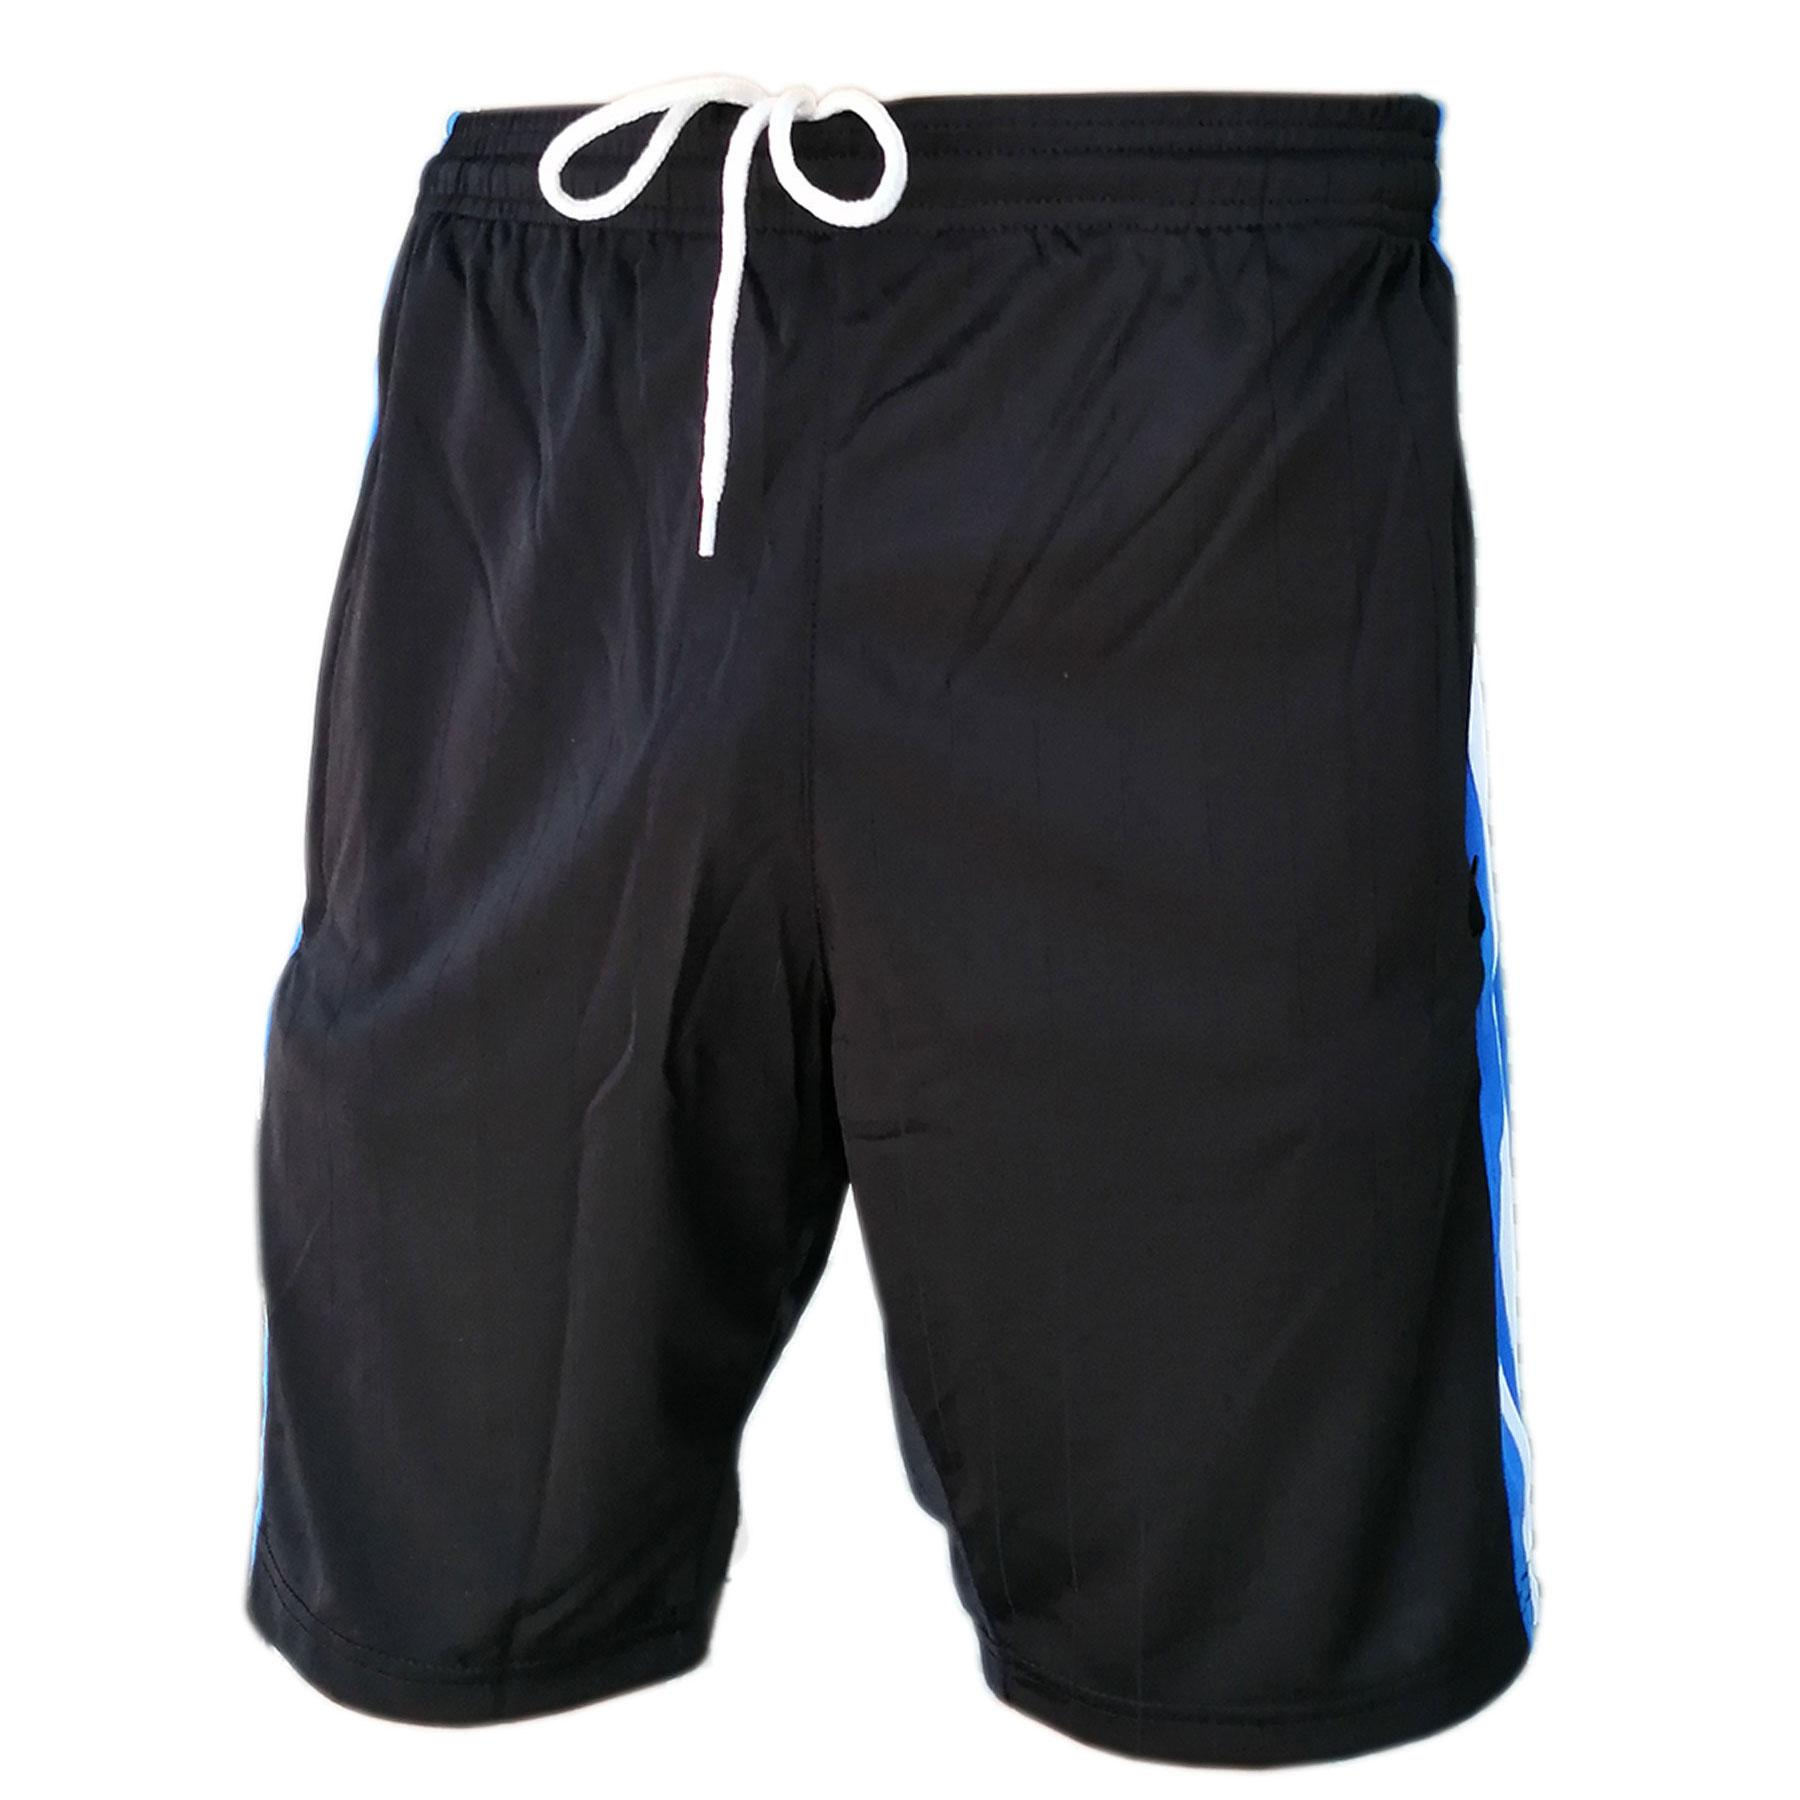 Boxing Shorts for Club and Sports Wear Trouser with Pockets